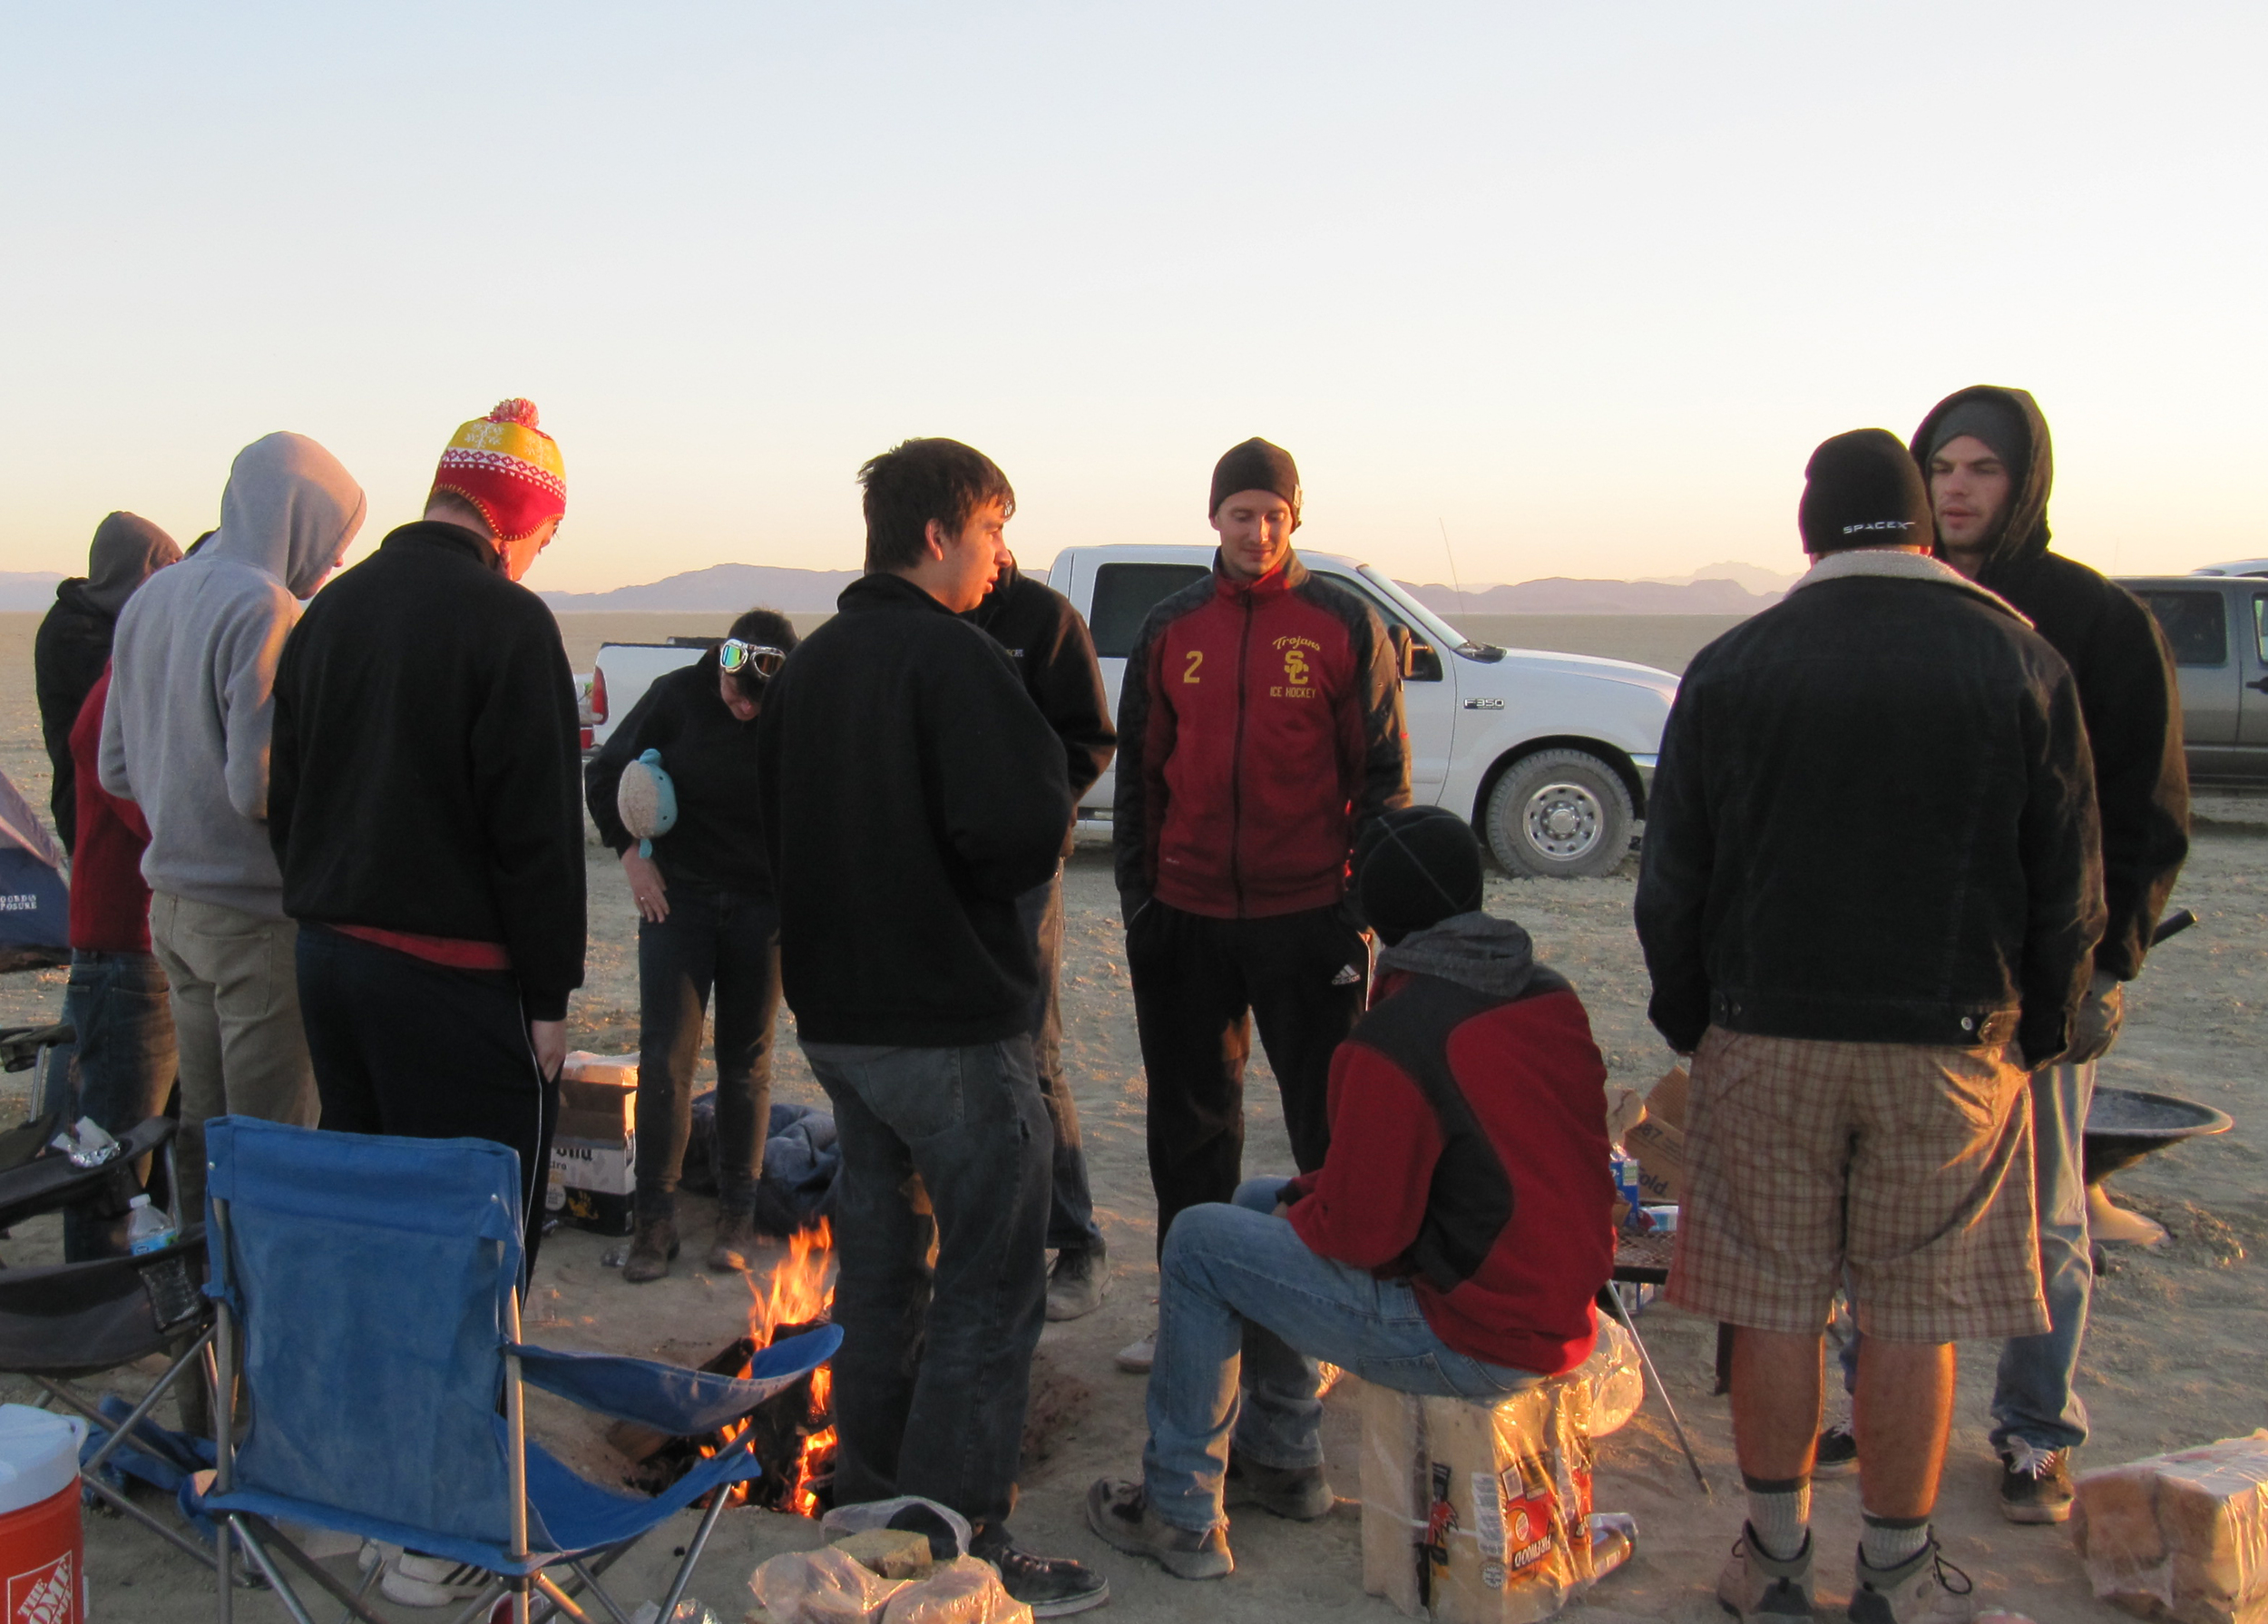 The team clings to the campfire at breakfast.